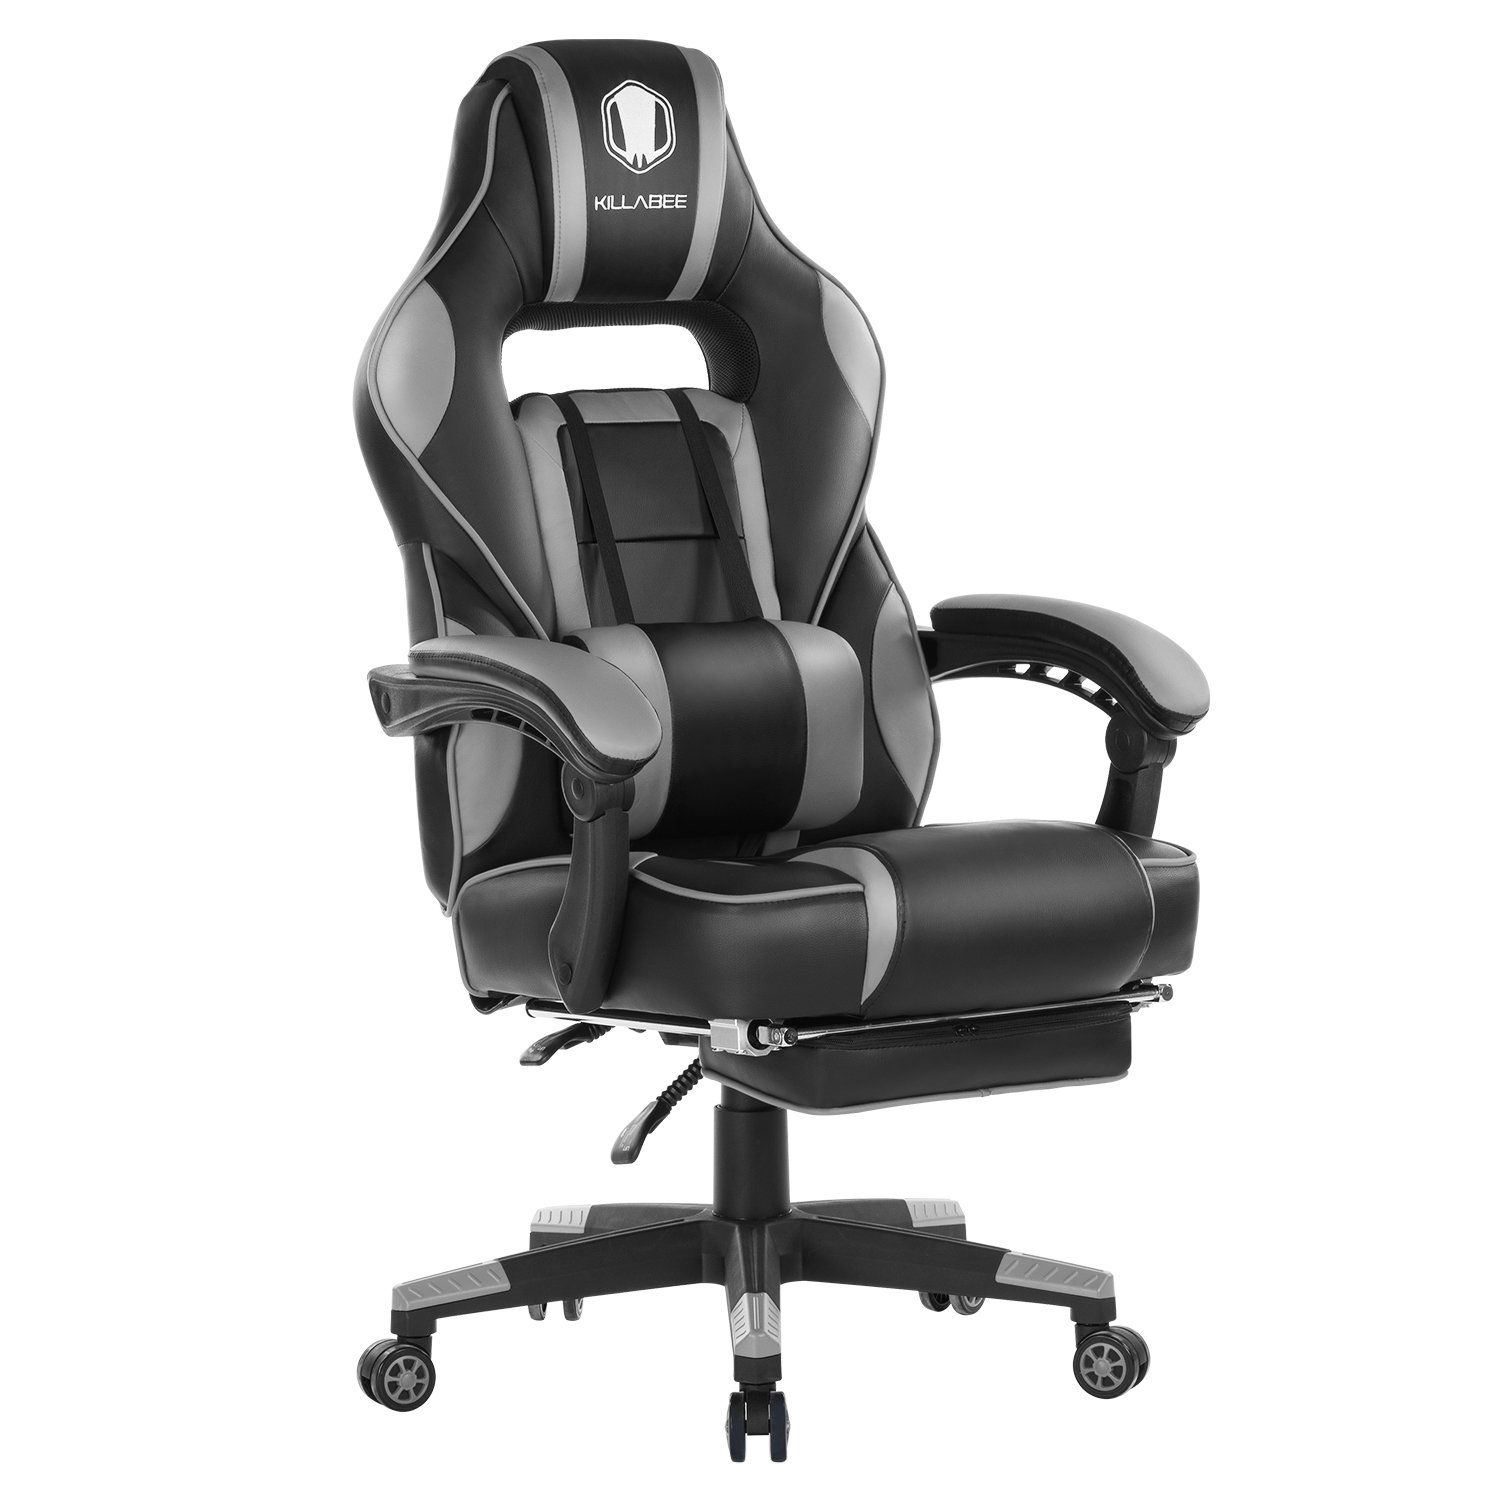 Brilliant Killabee 9015 Gray Gaming Chair Products In 2019 Gaming Caraccident5 Cool Chair Designs And Ideas Caraccident5Info